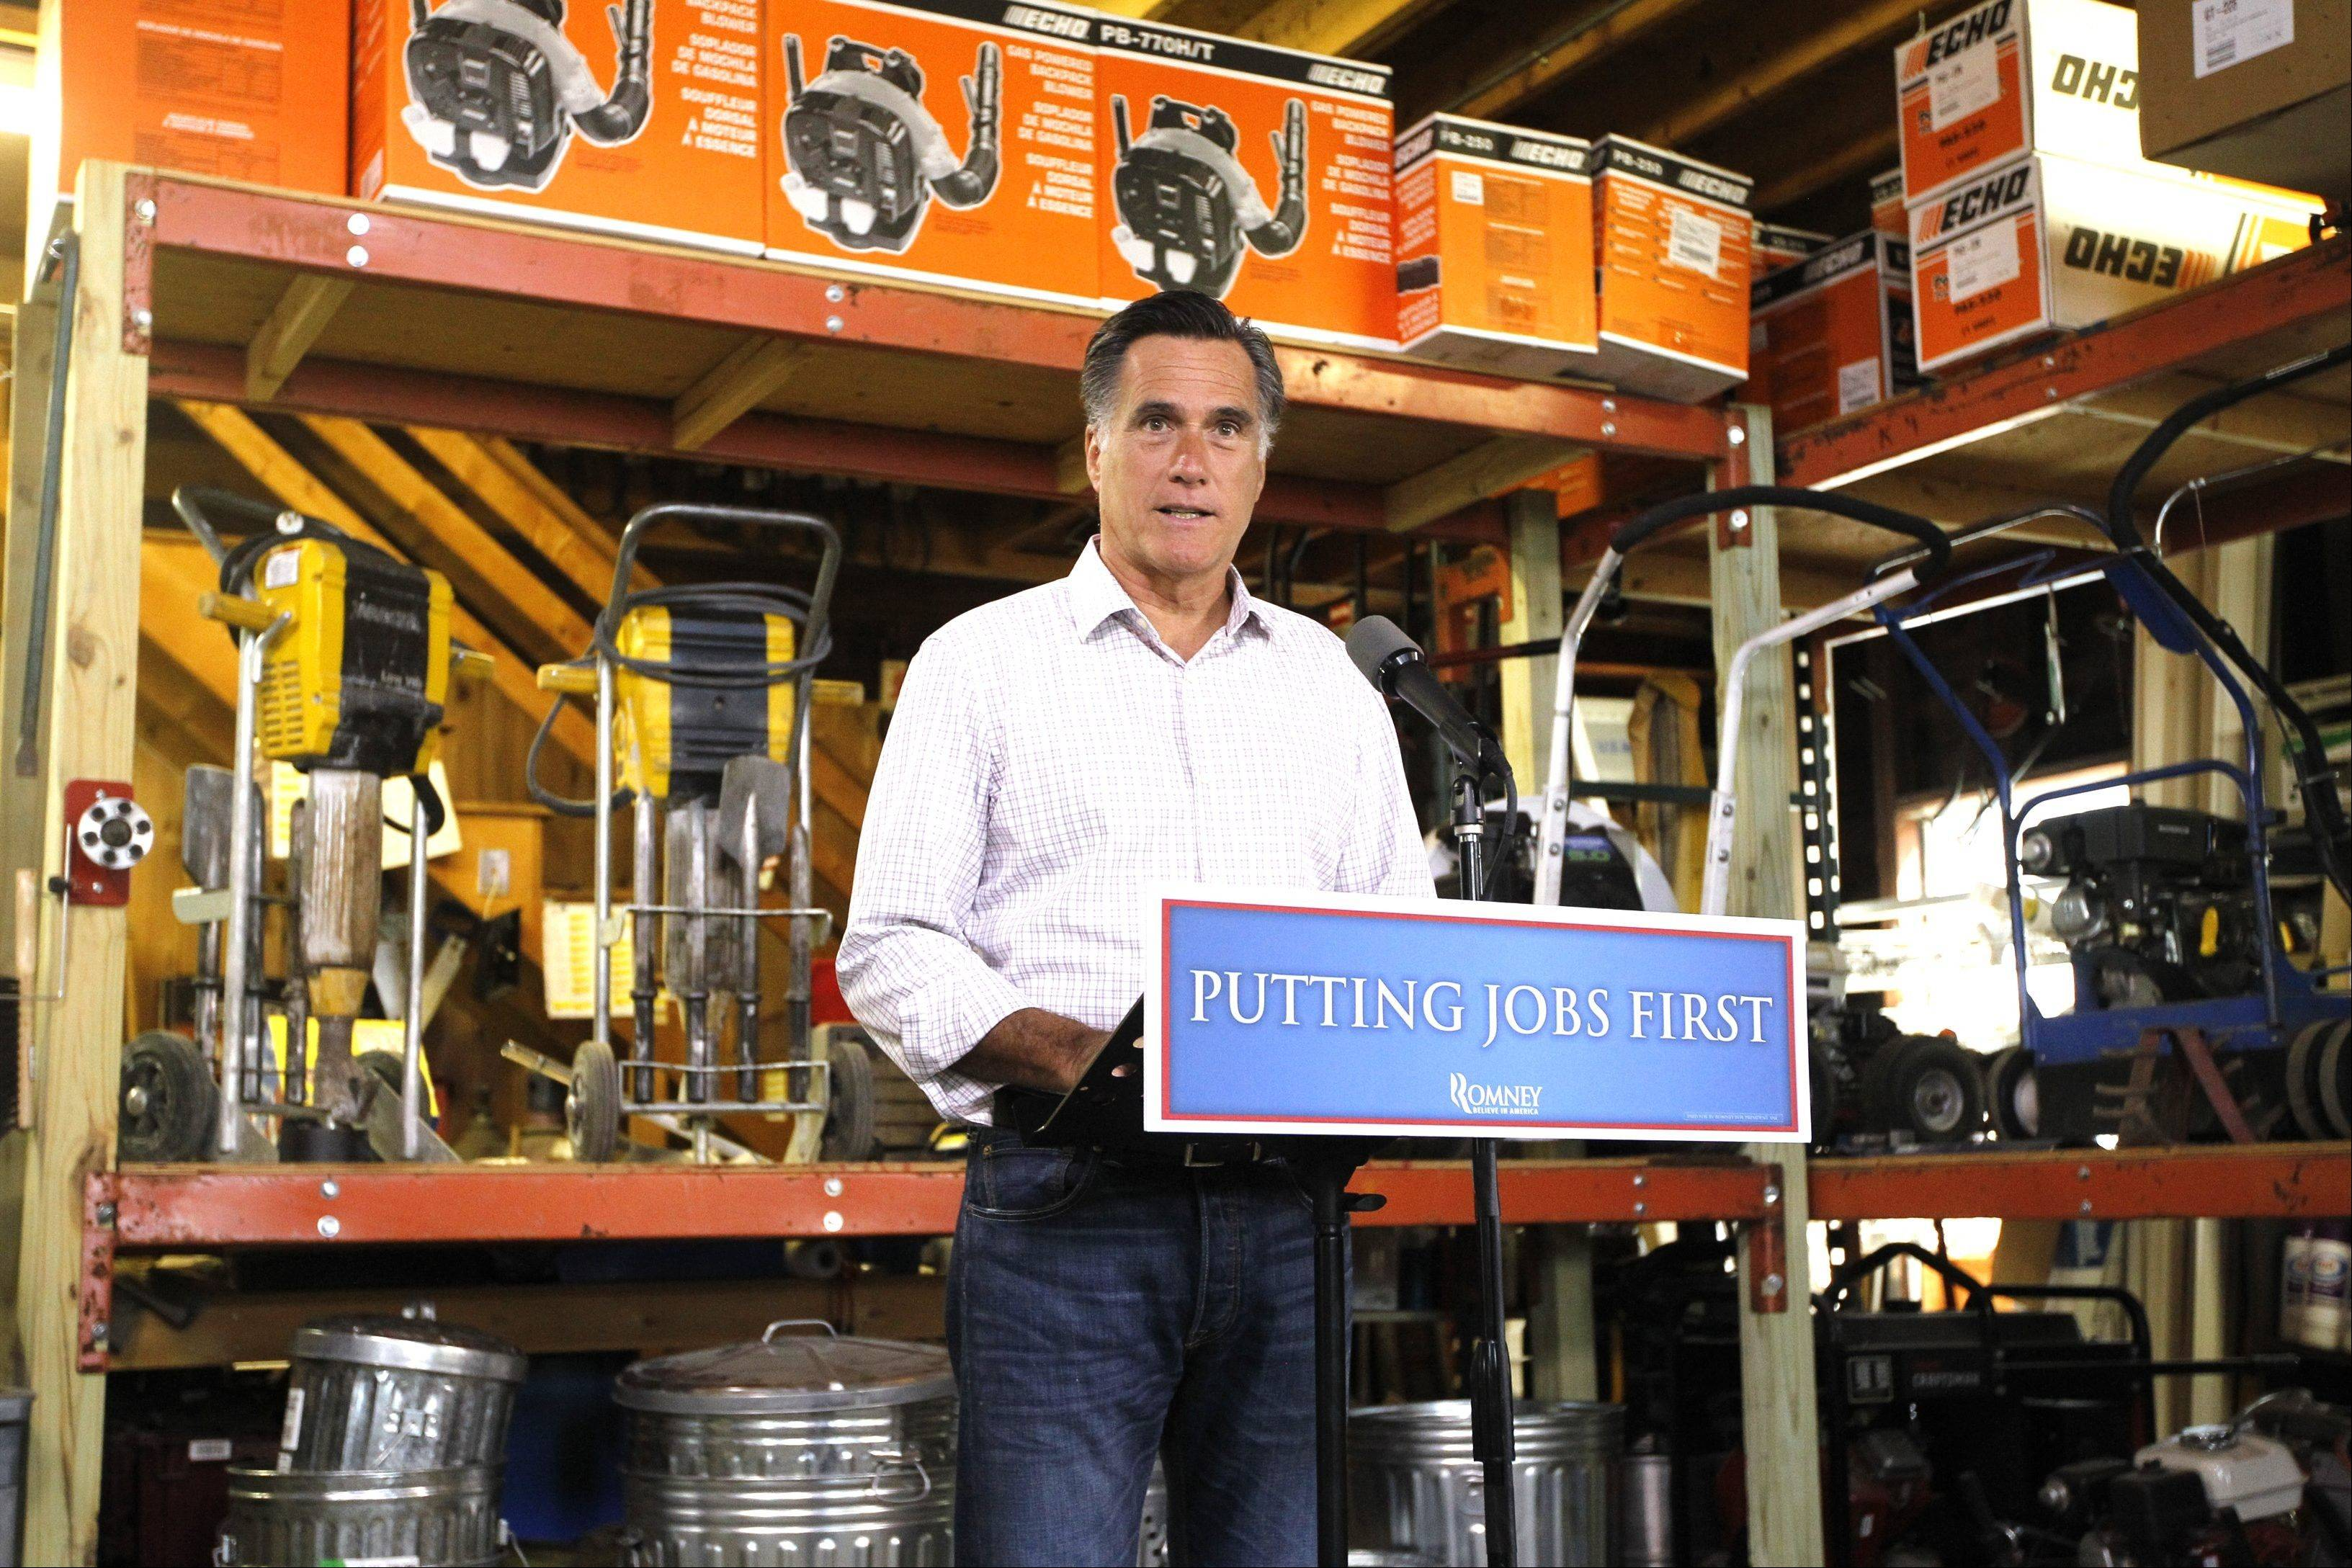 GOP critics attack Romney's safe approach